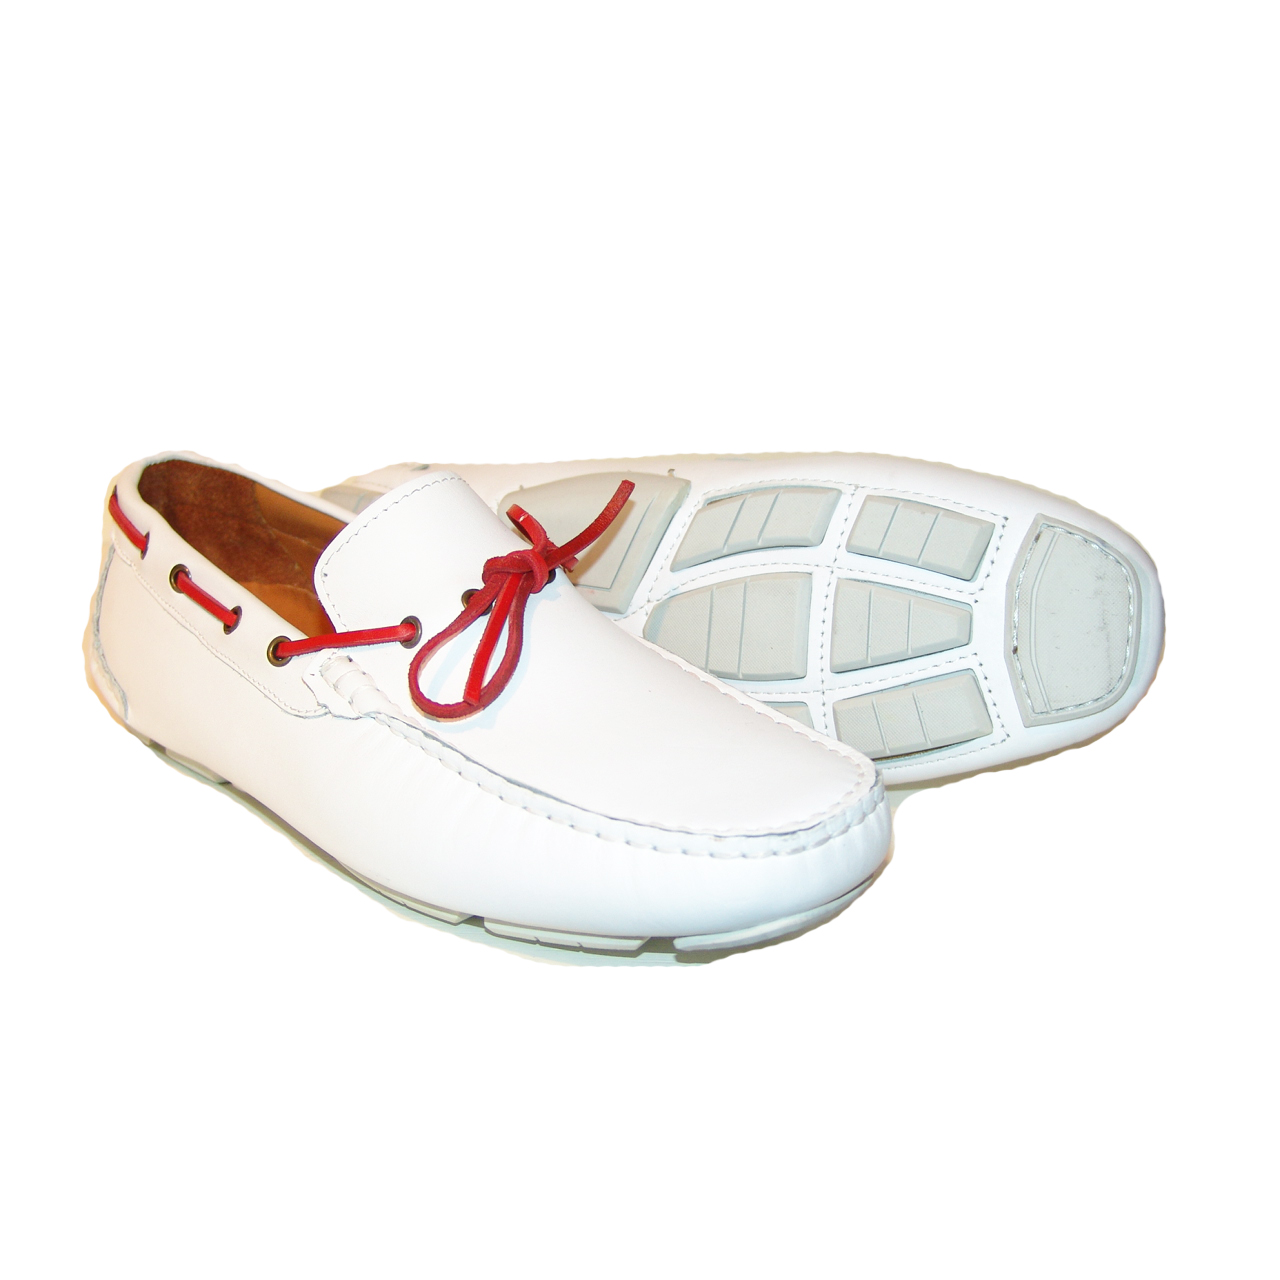 Pelle Line Exclusive 7810- White driving shoes